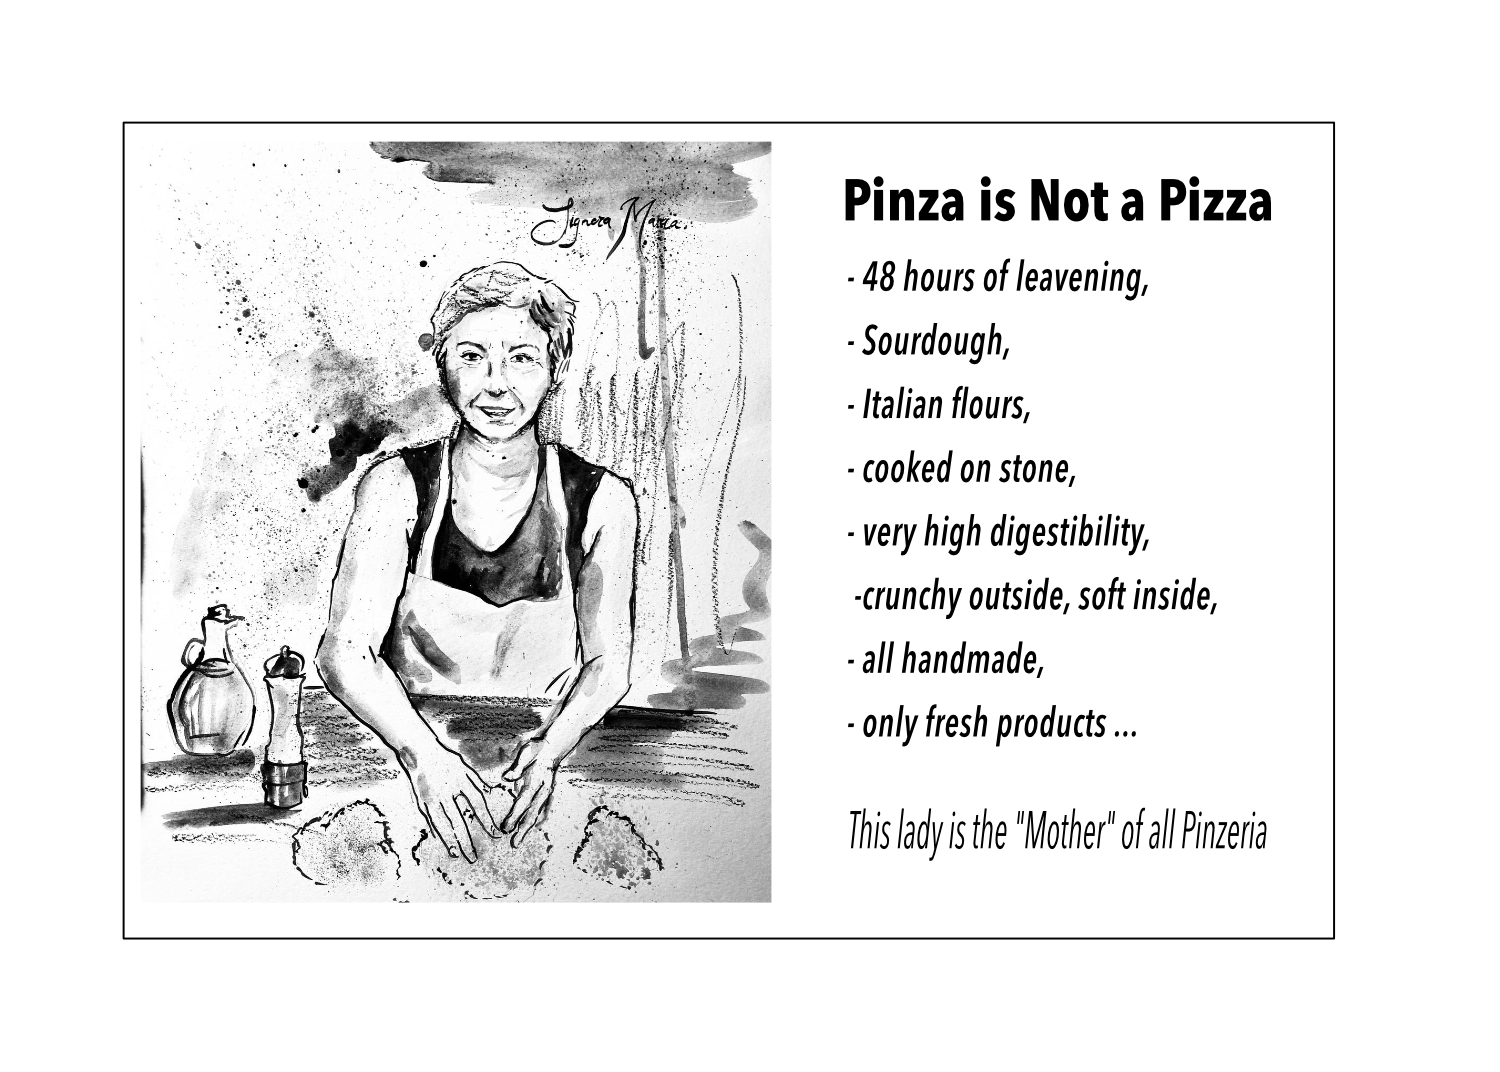 pinza is Not a Pizza !!!